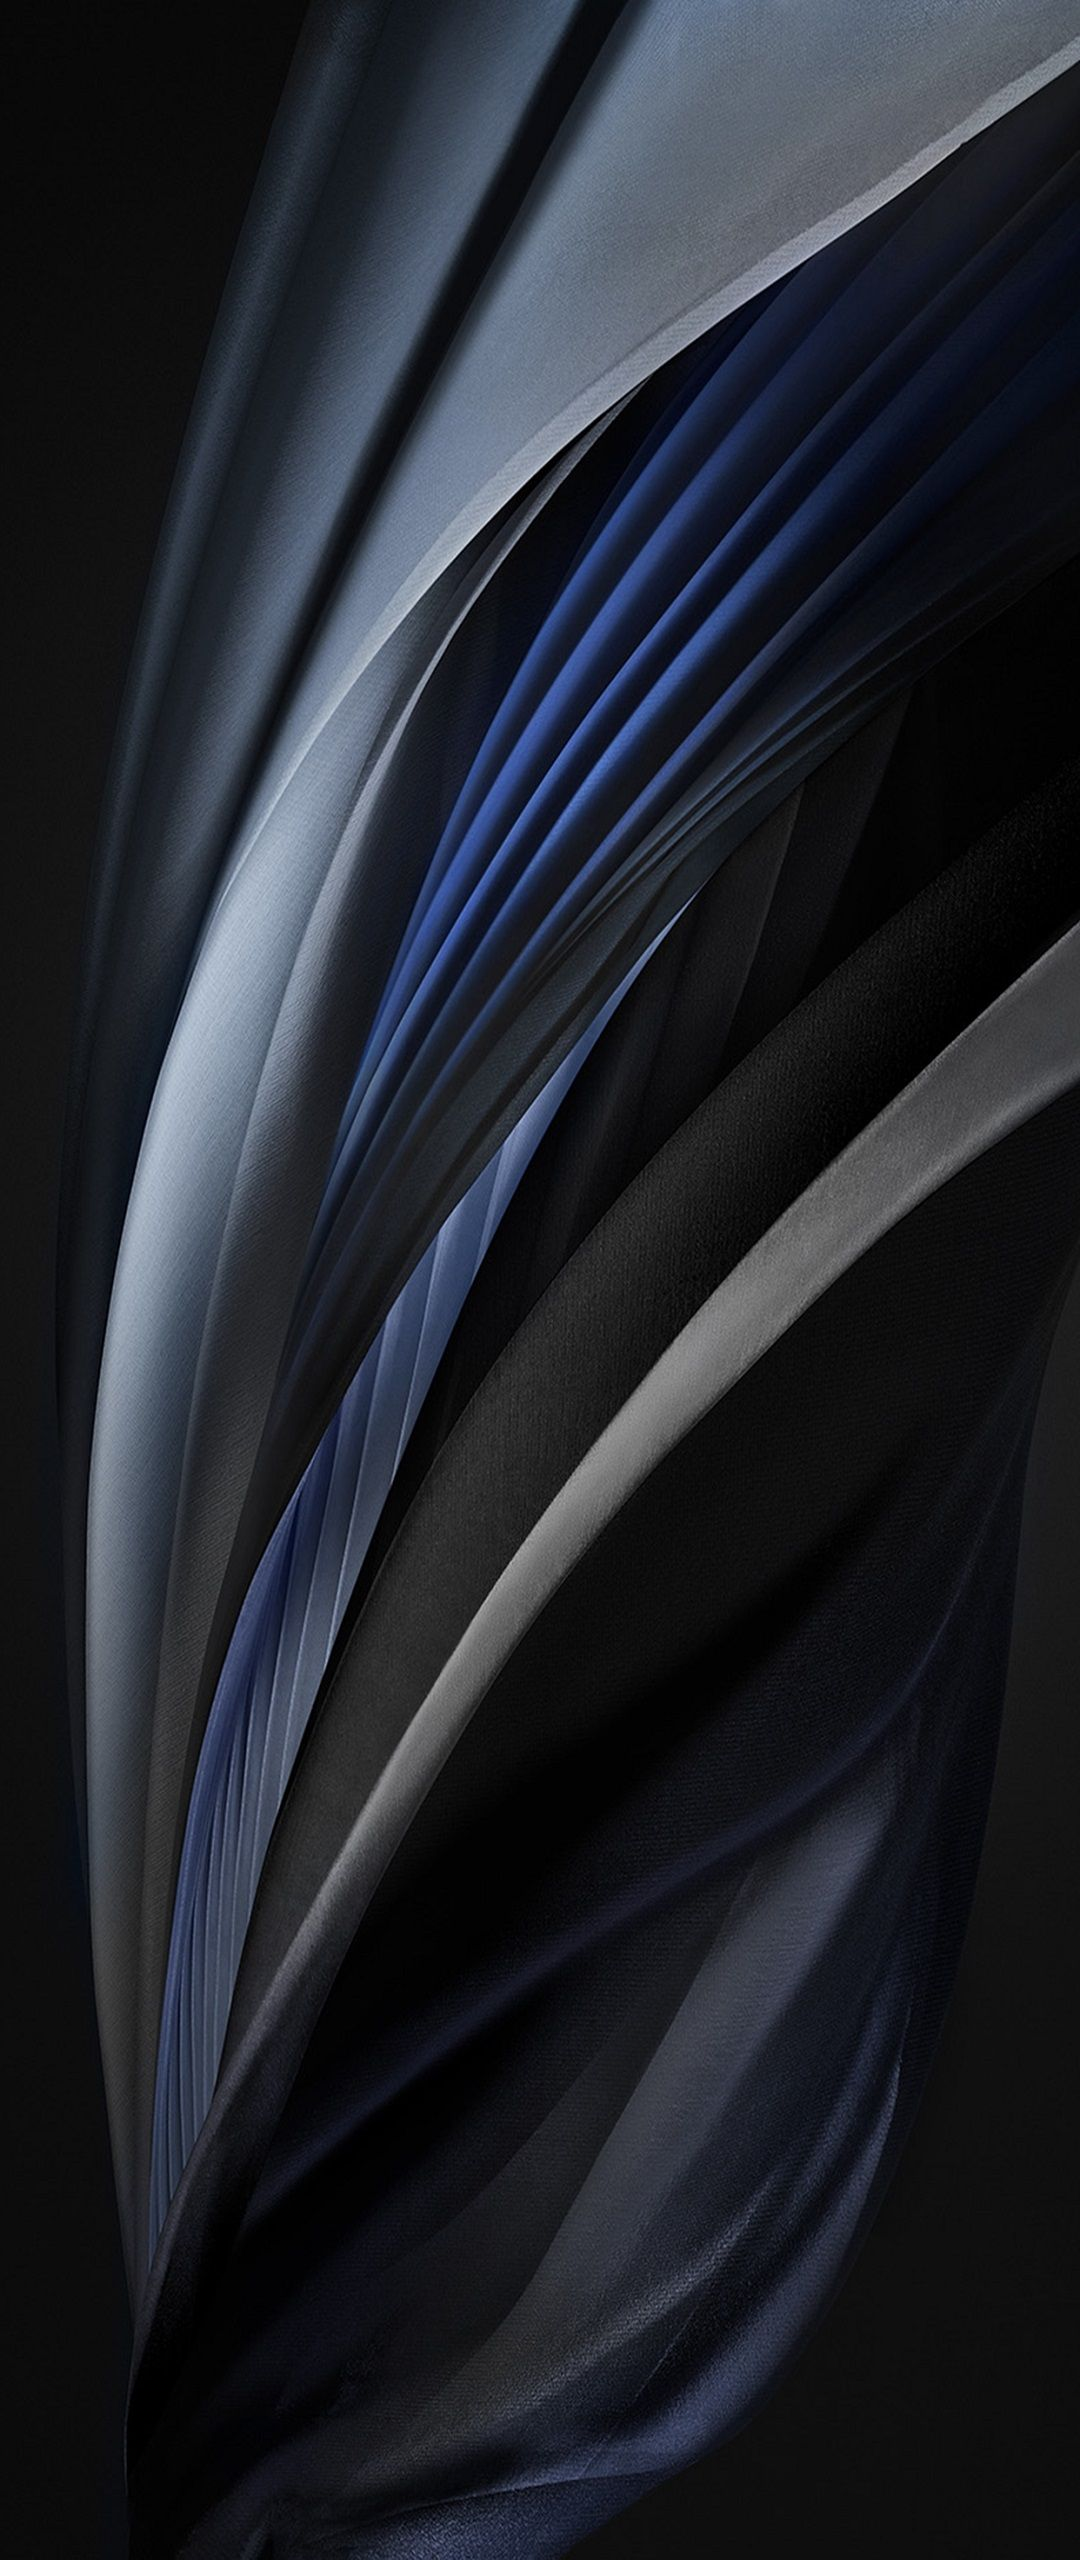 Pin on iPhone 12 wallpapers